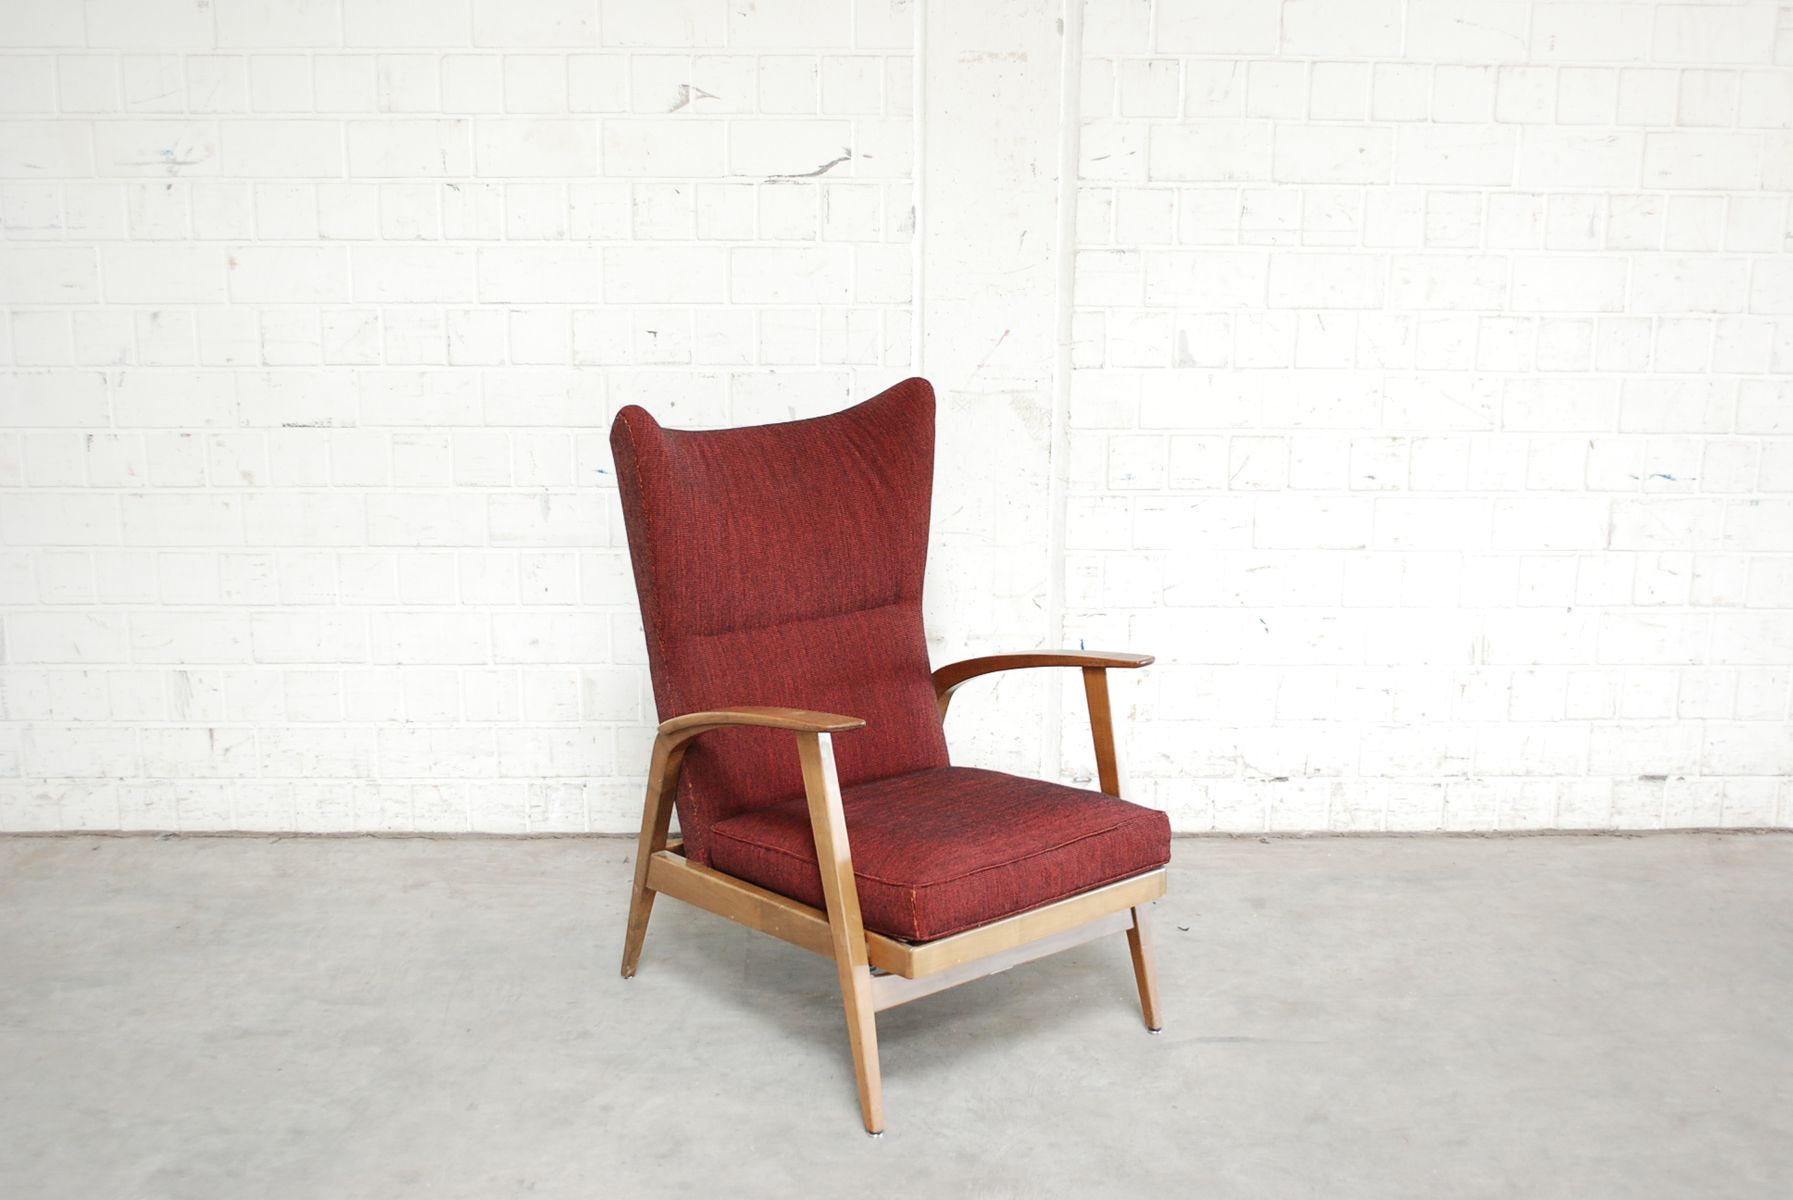 Reclining Wingback Chair from Knoll 1965 for sale at Pamono